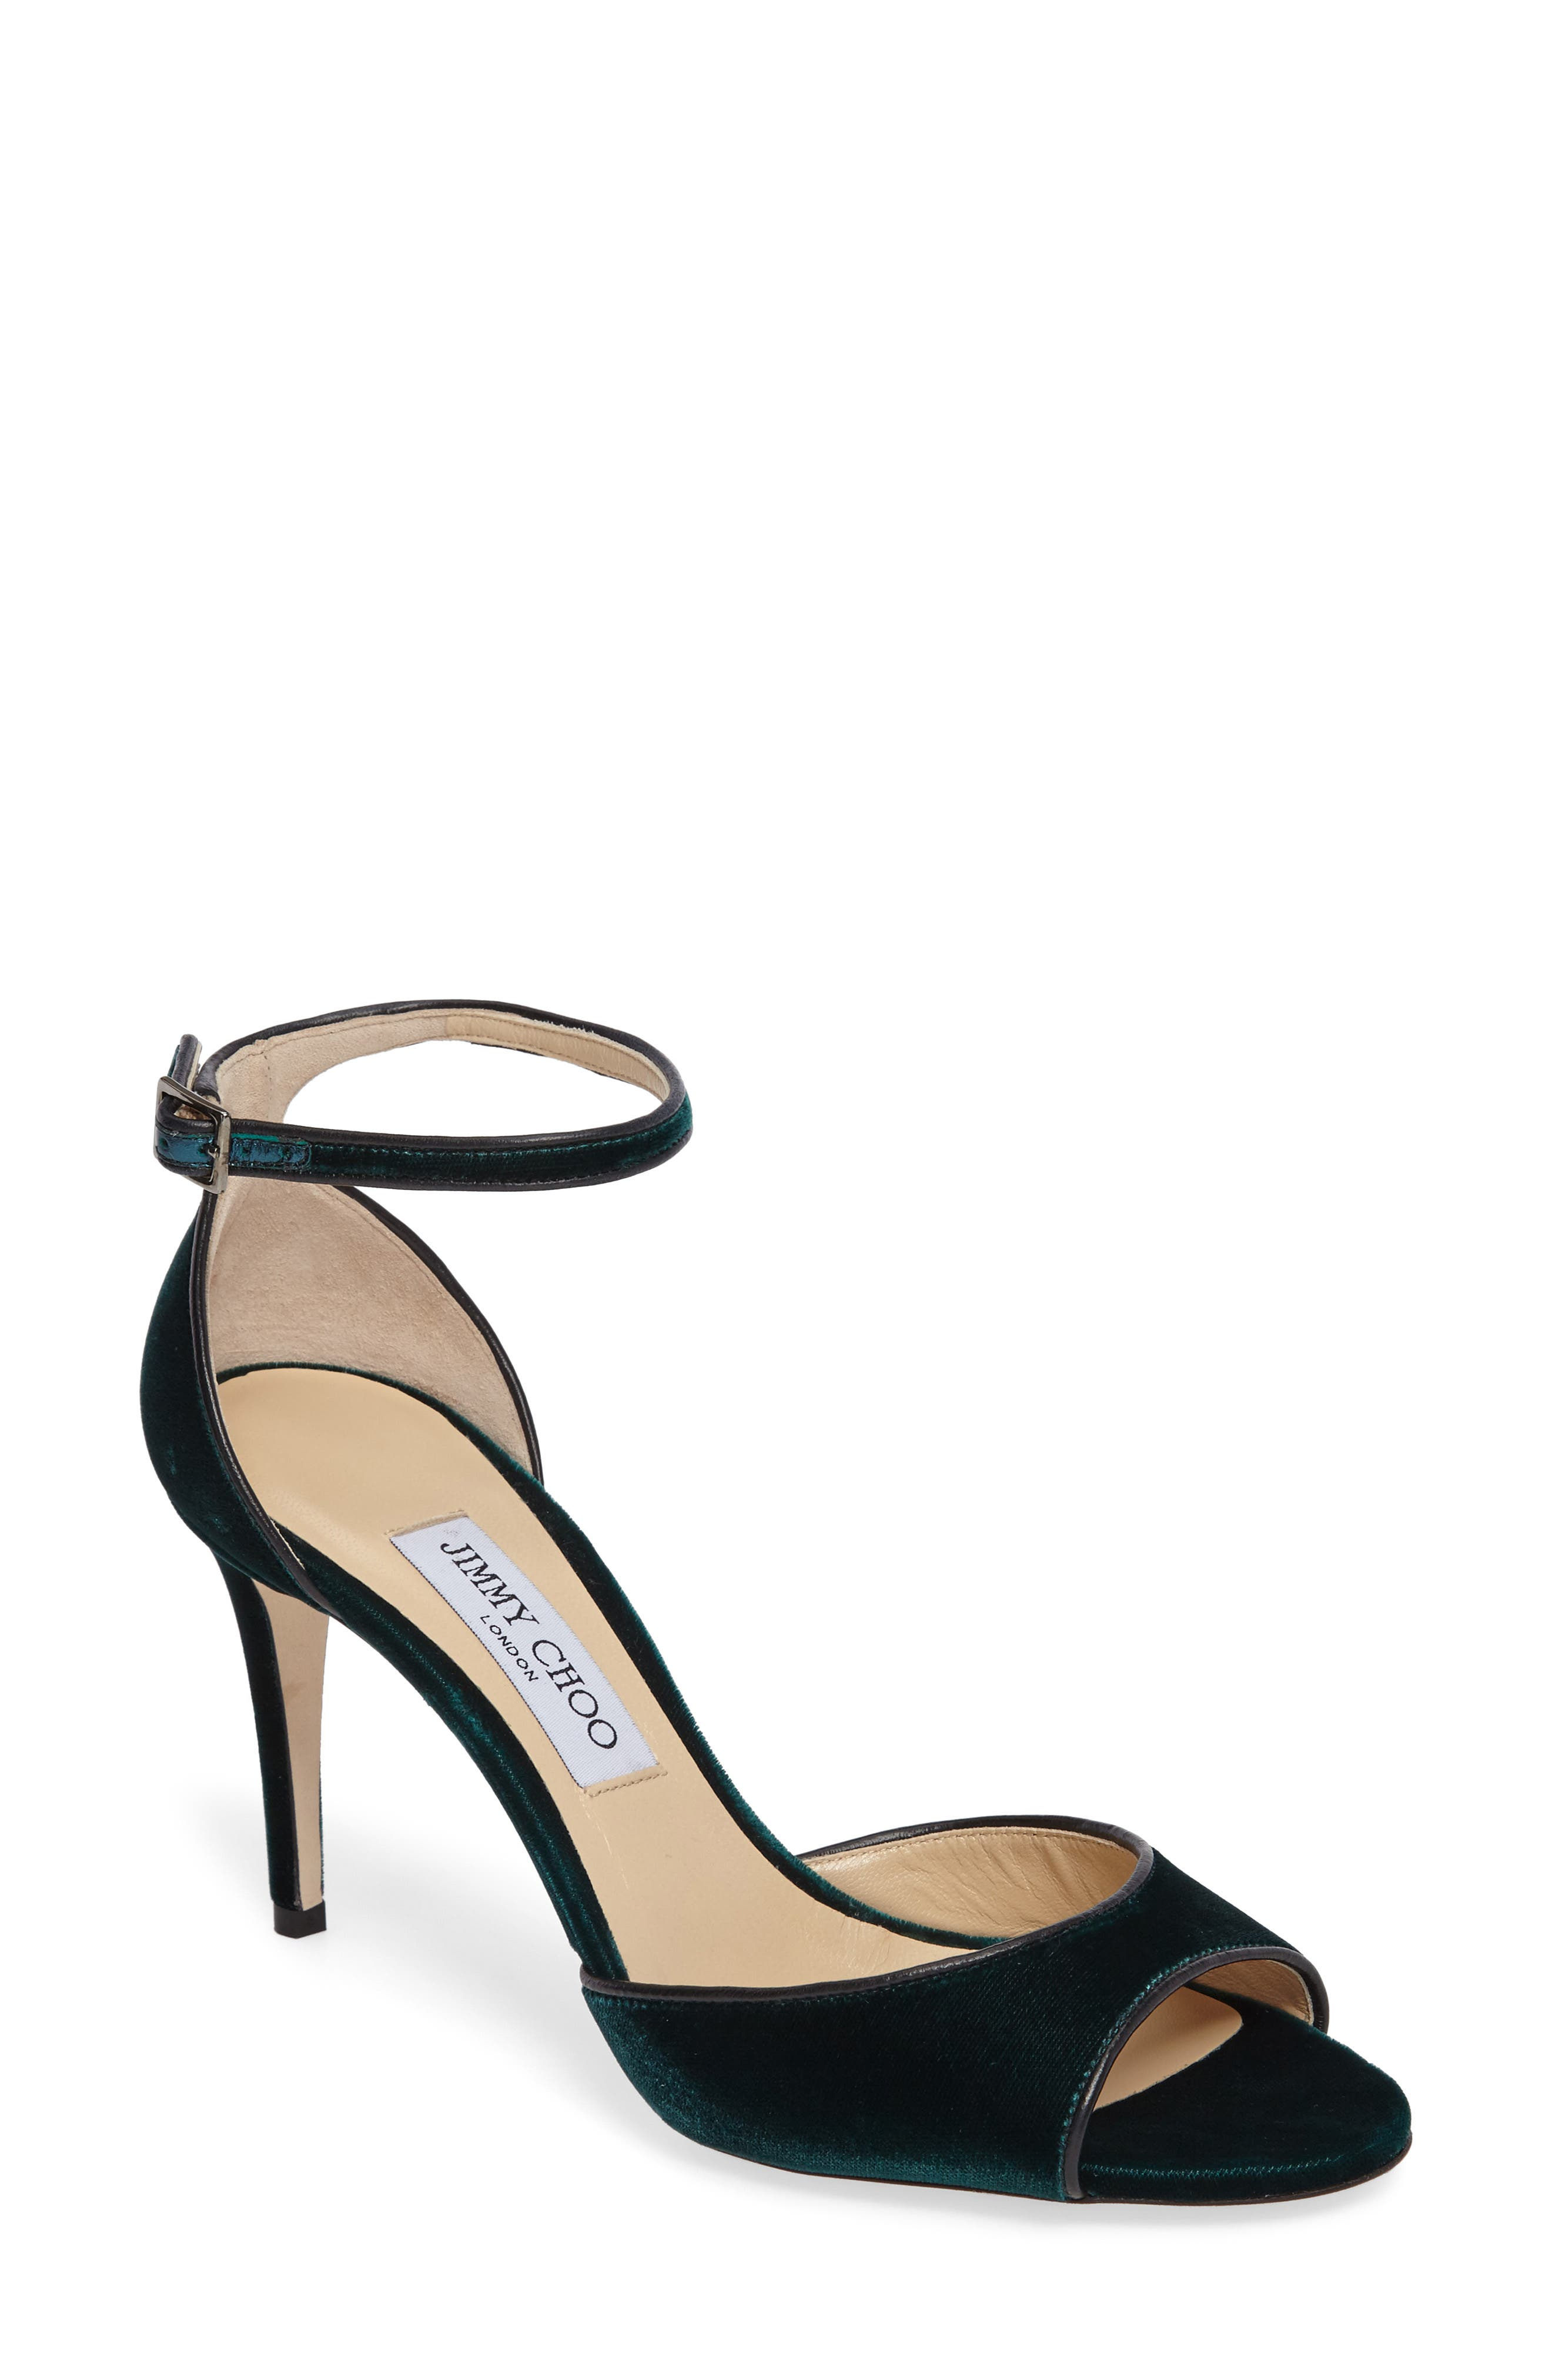 JIMMY CHOO Annie Ankle Strap Sandal, Main, color, 300